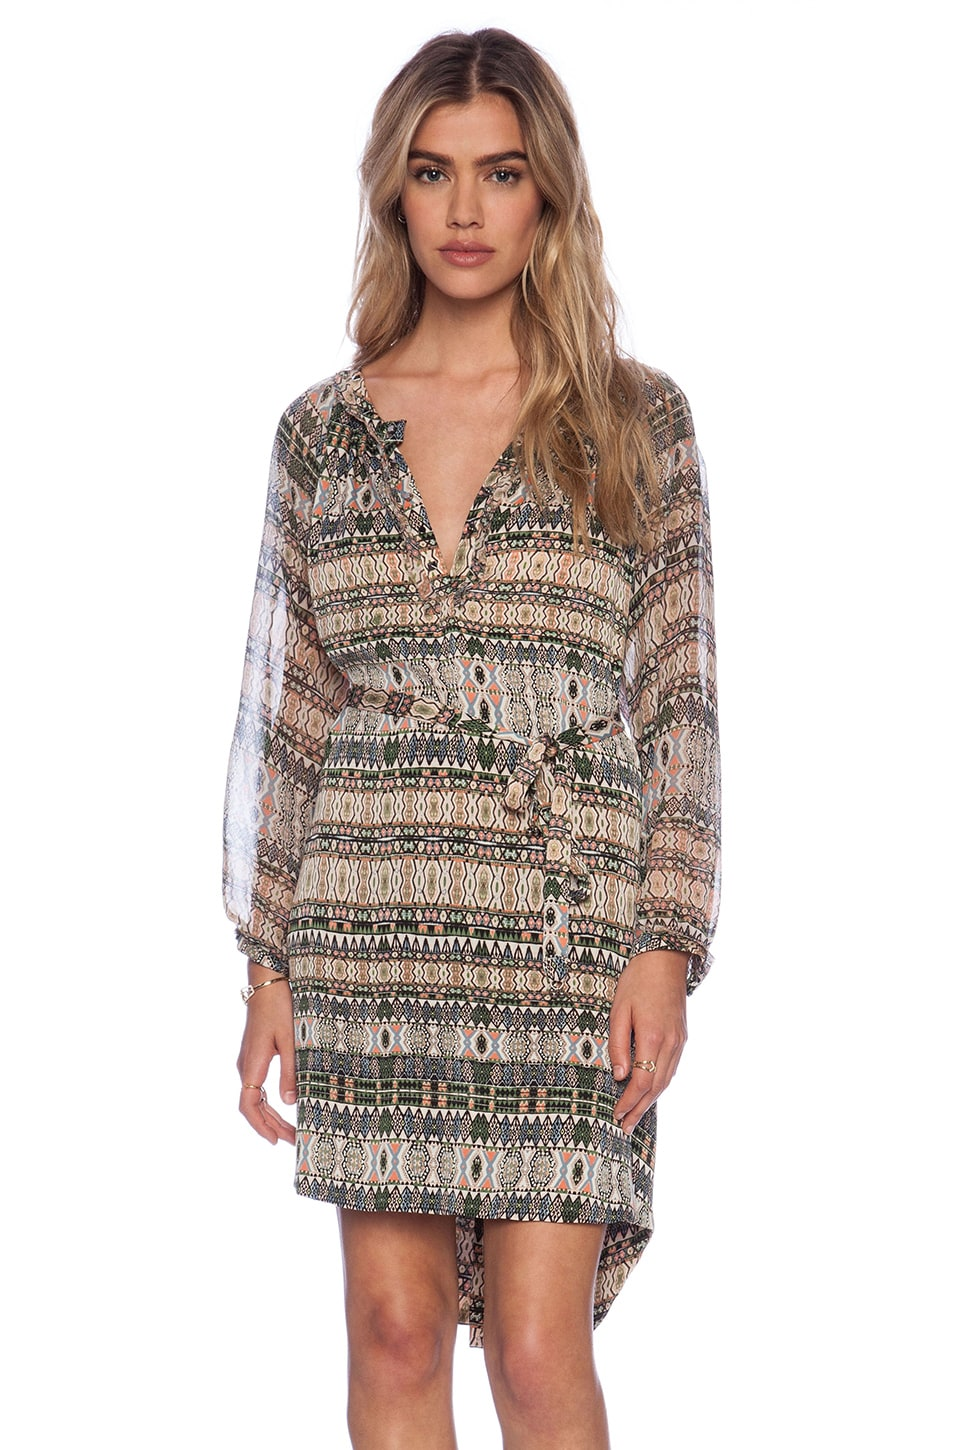 Gypsy 05 Navicella Tunic Dress in Neu